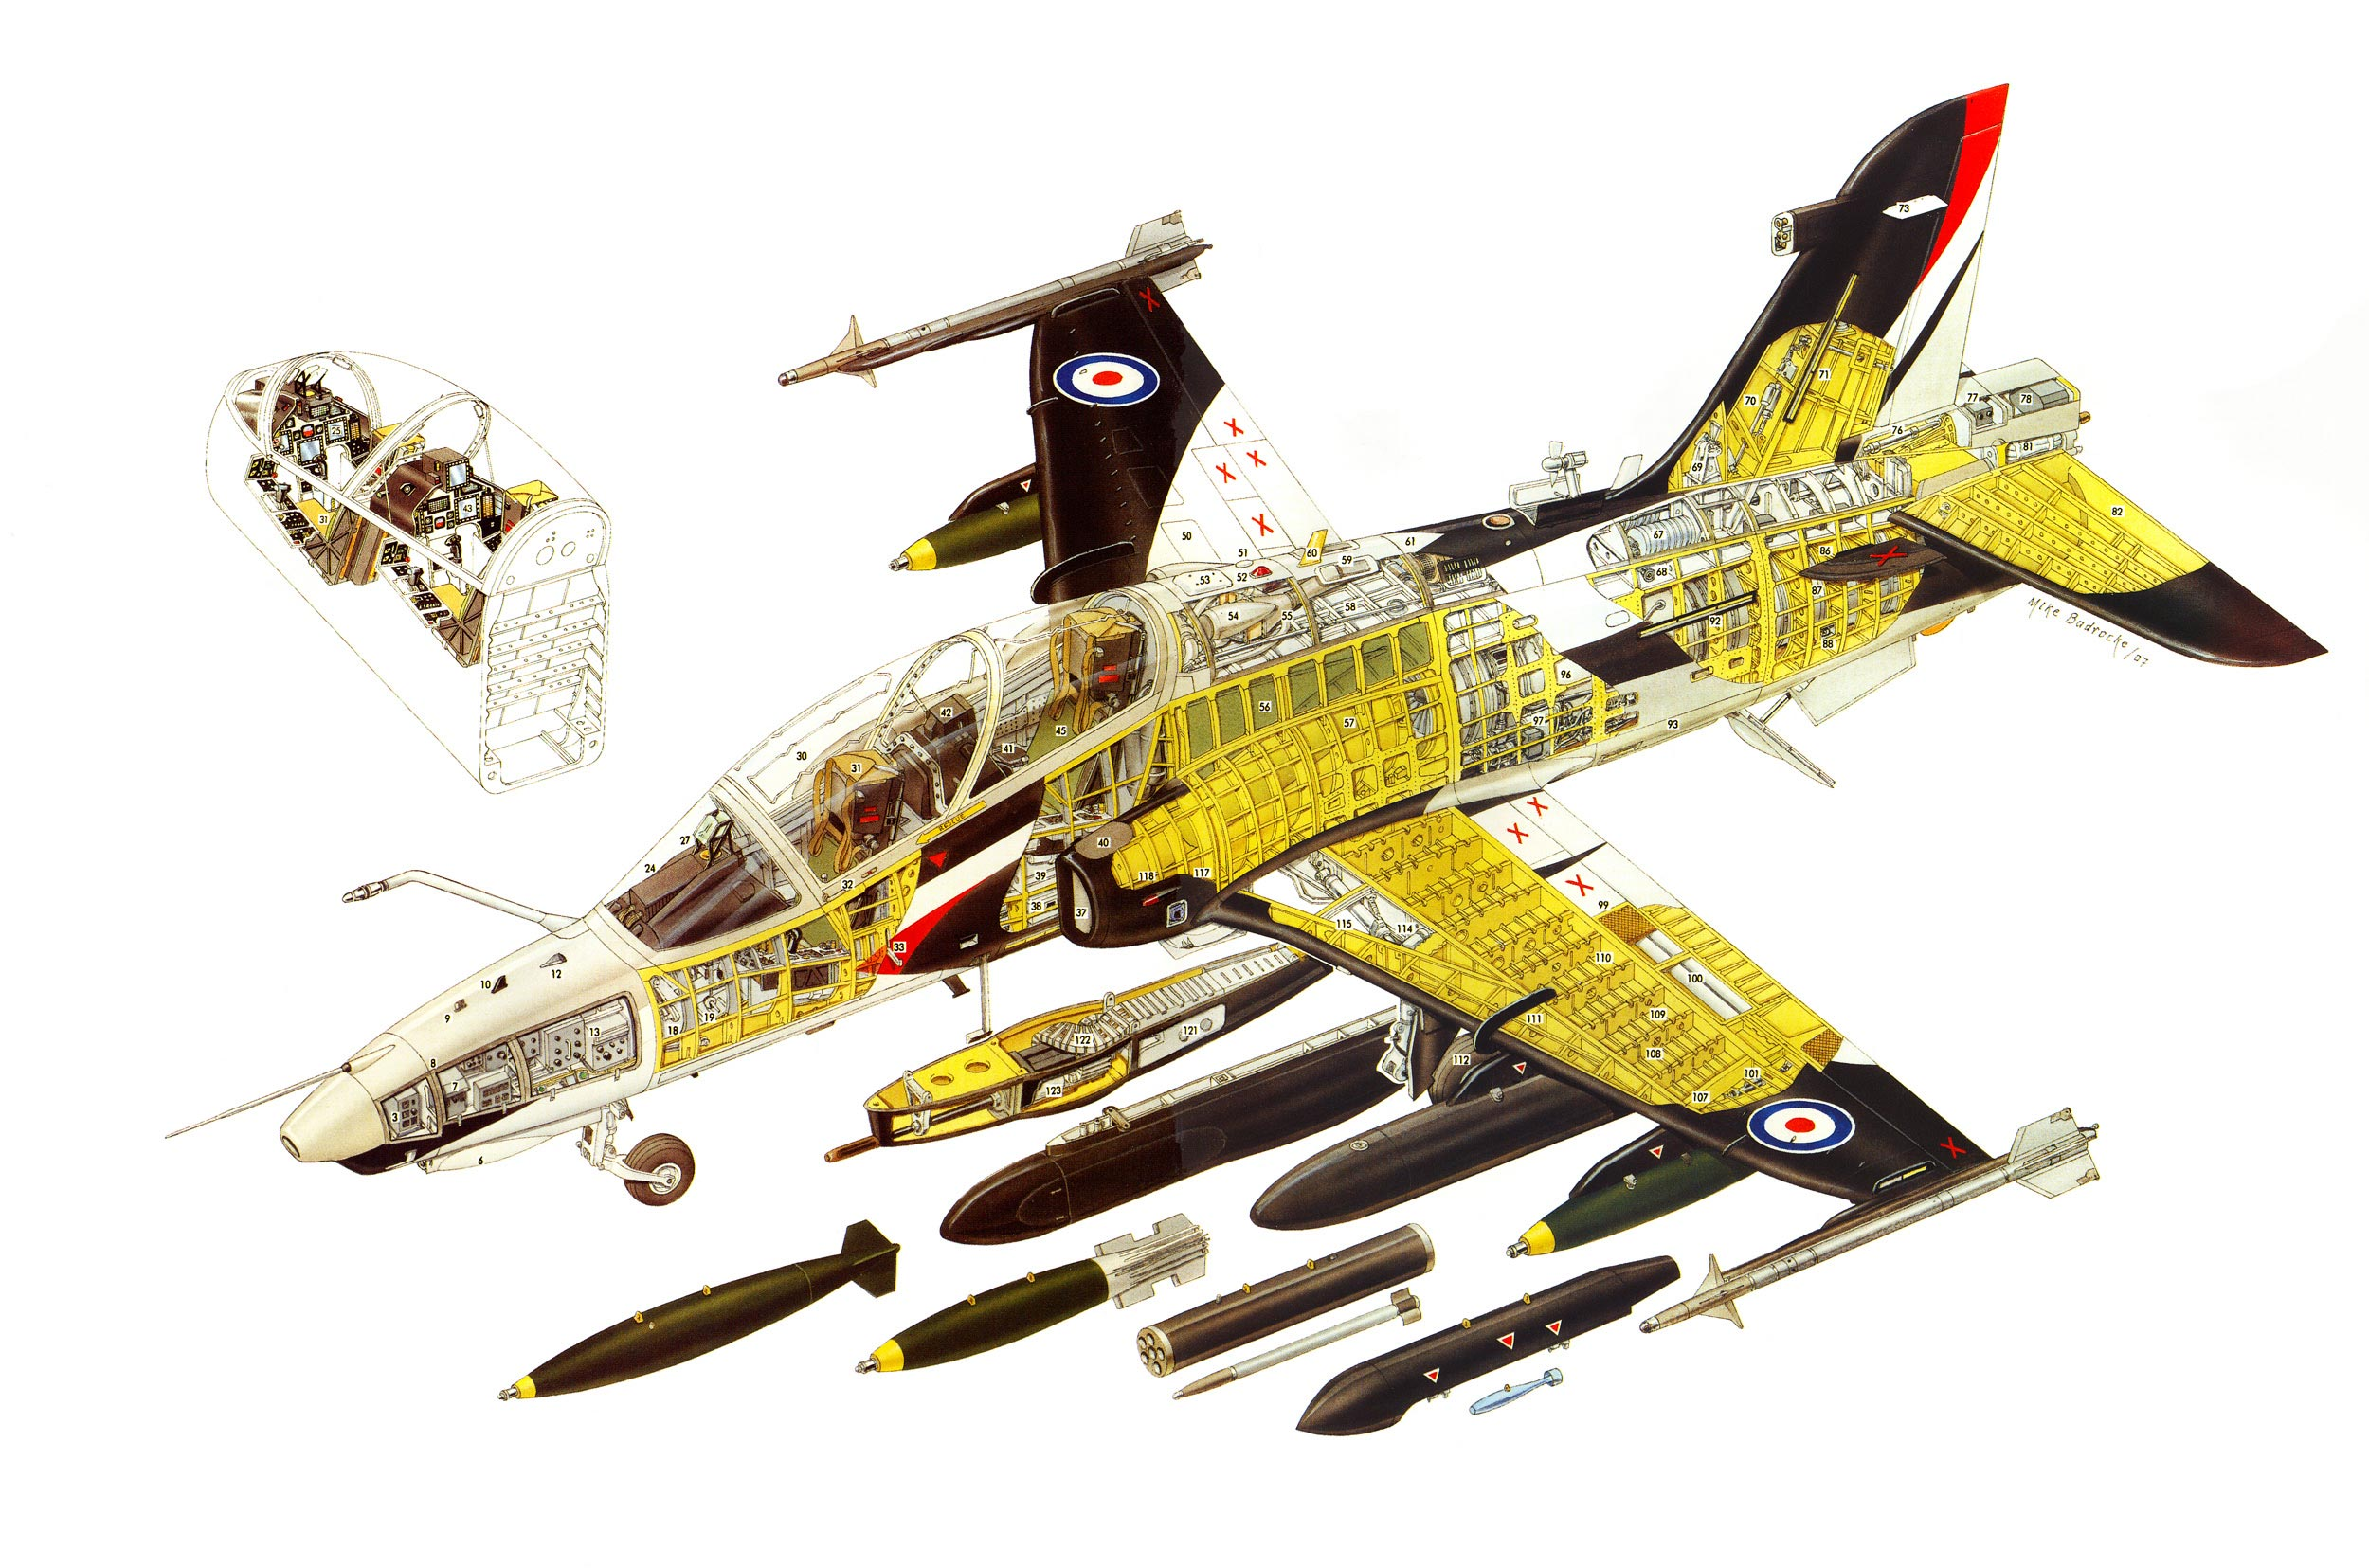 British Aerospace Hawk 200 cutaway